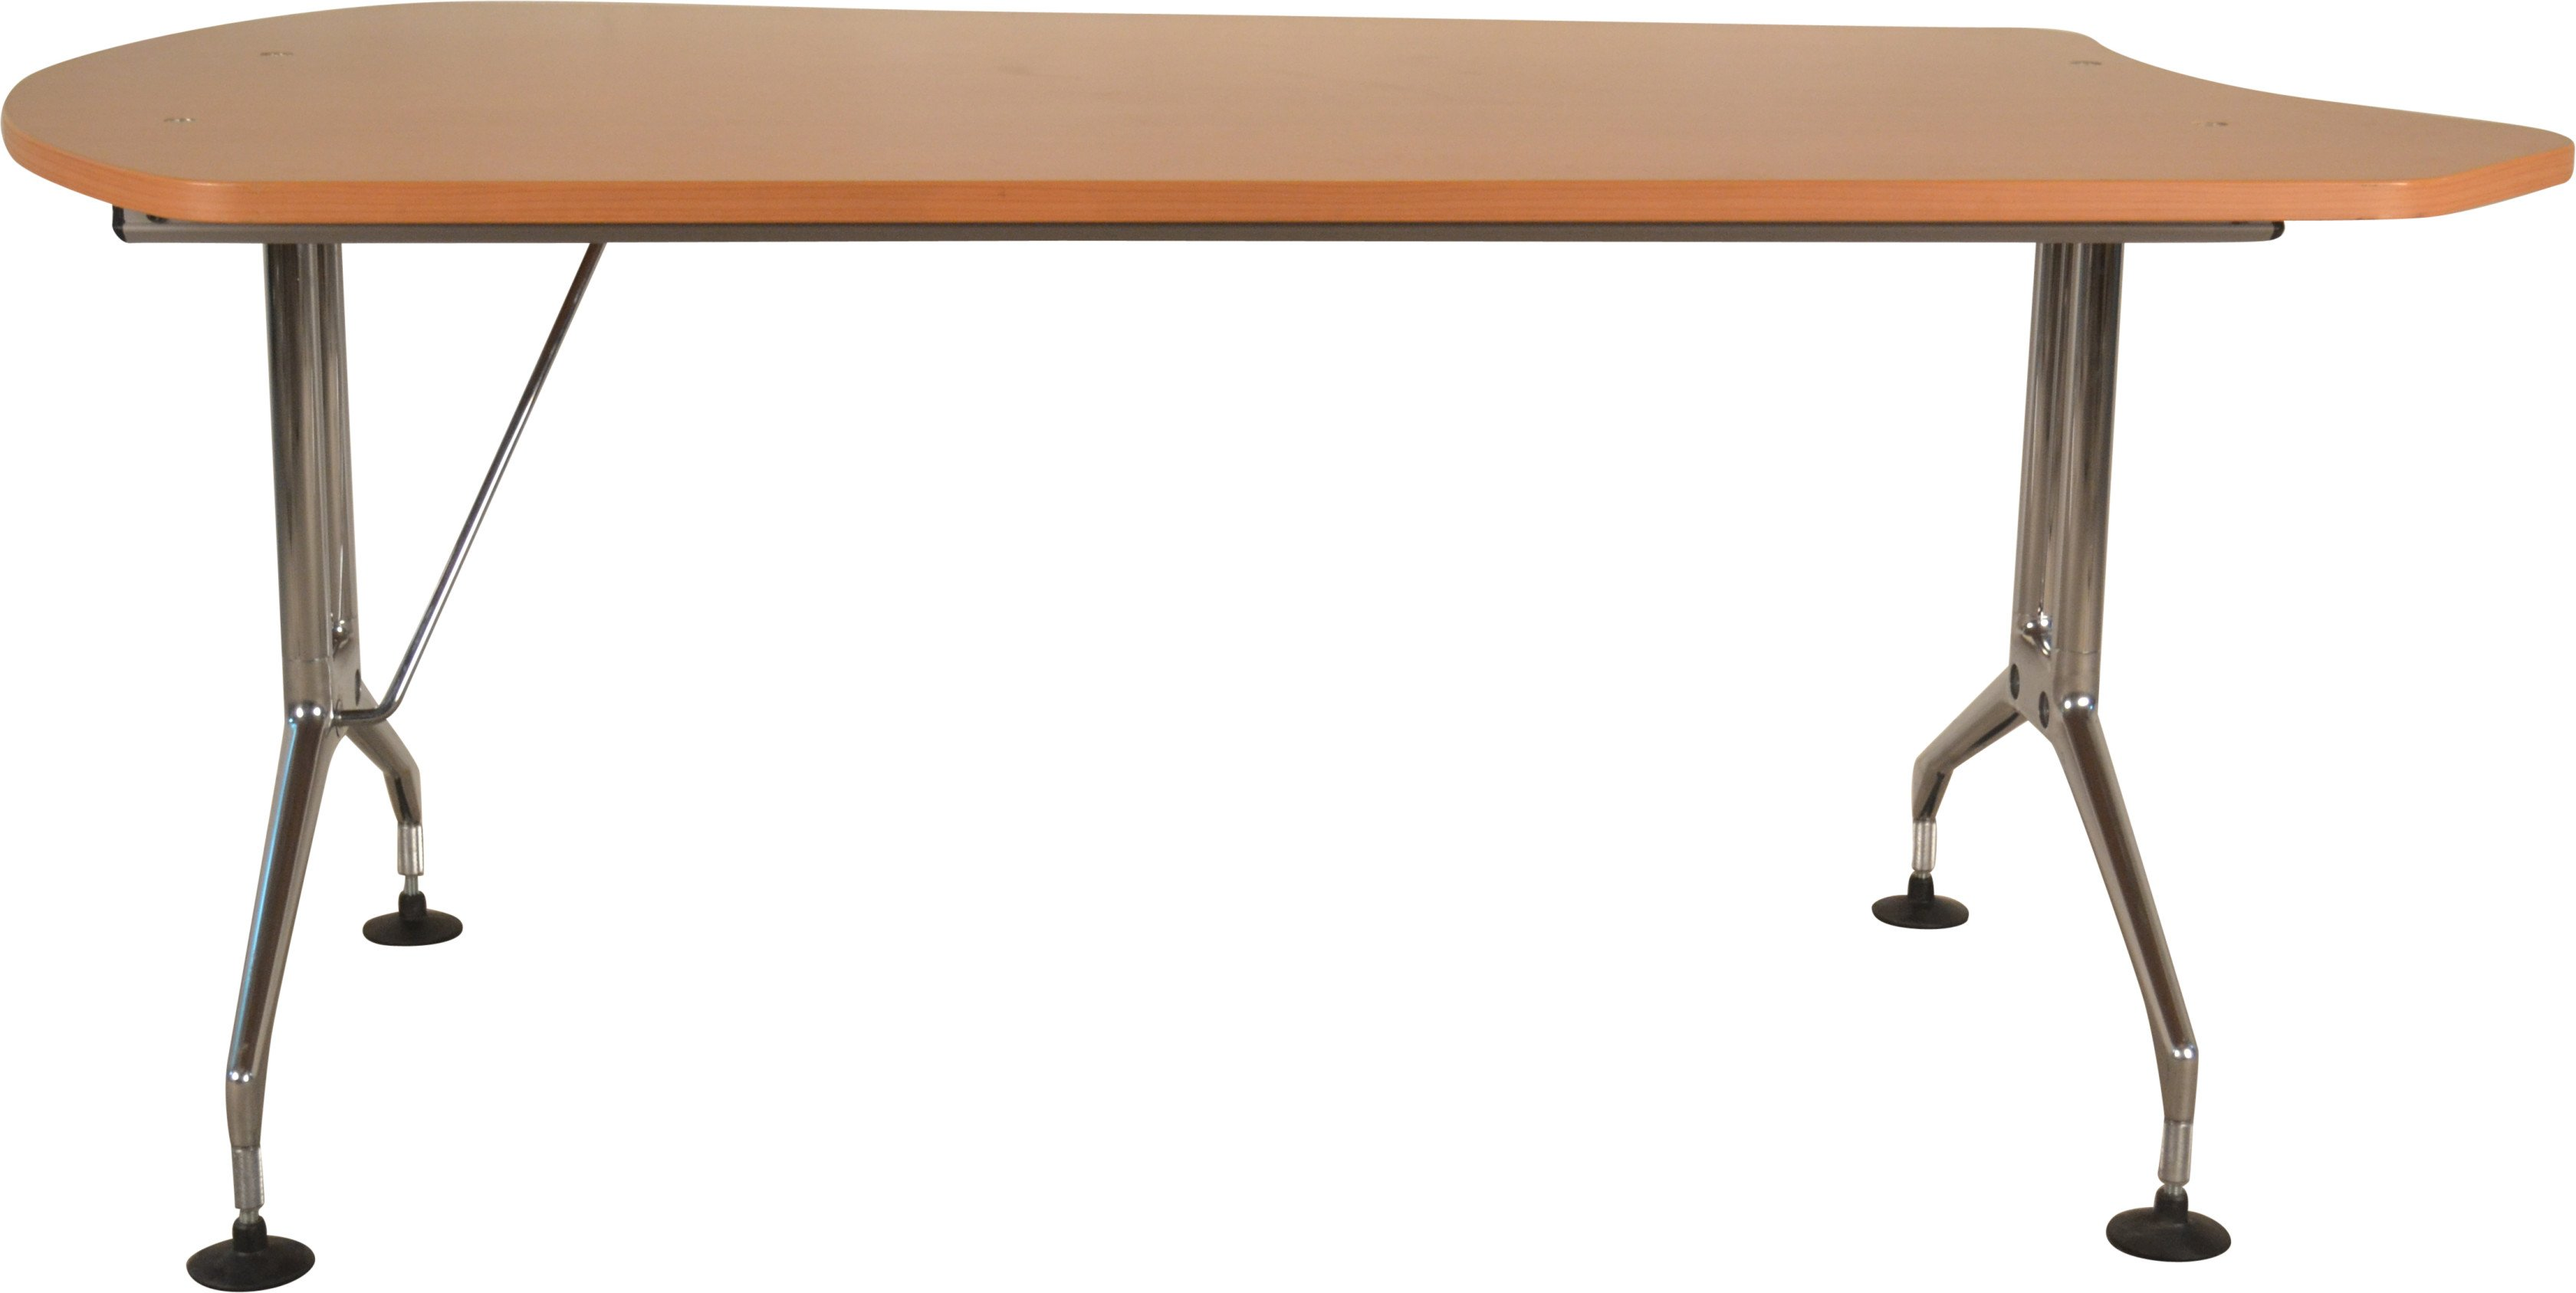 Desk by A. Citterio, Vitra, 1990s